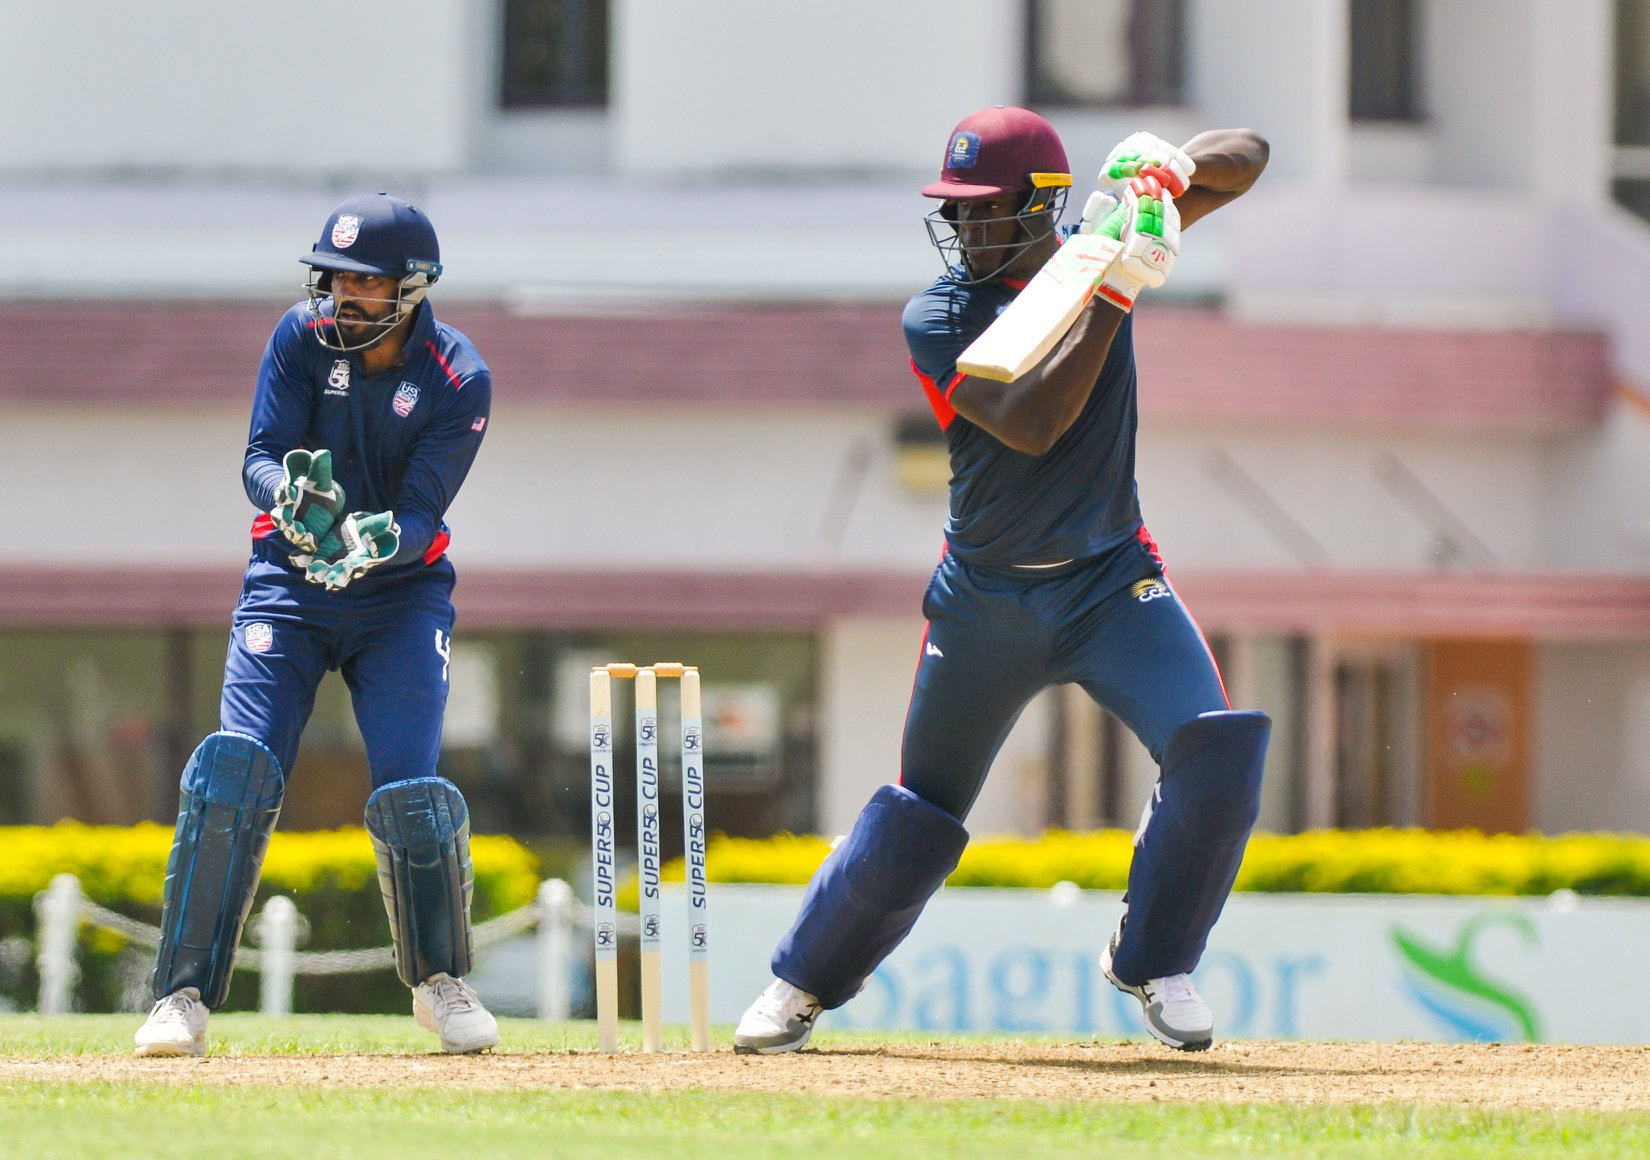 A batsman playing a cover drive as Jaskaran Malhotra looks on from behind the stumps. (USA Cricket)